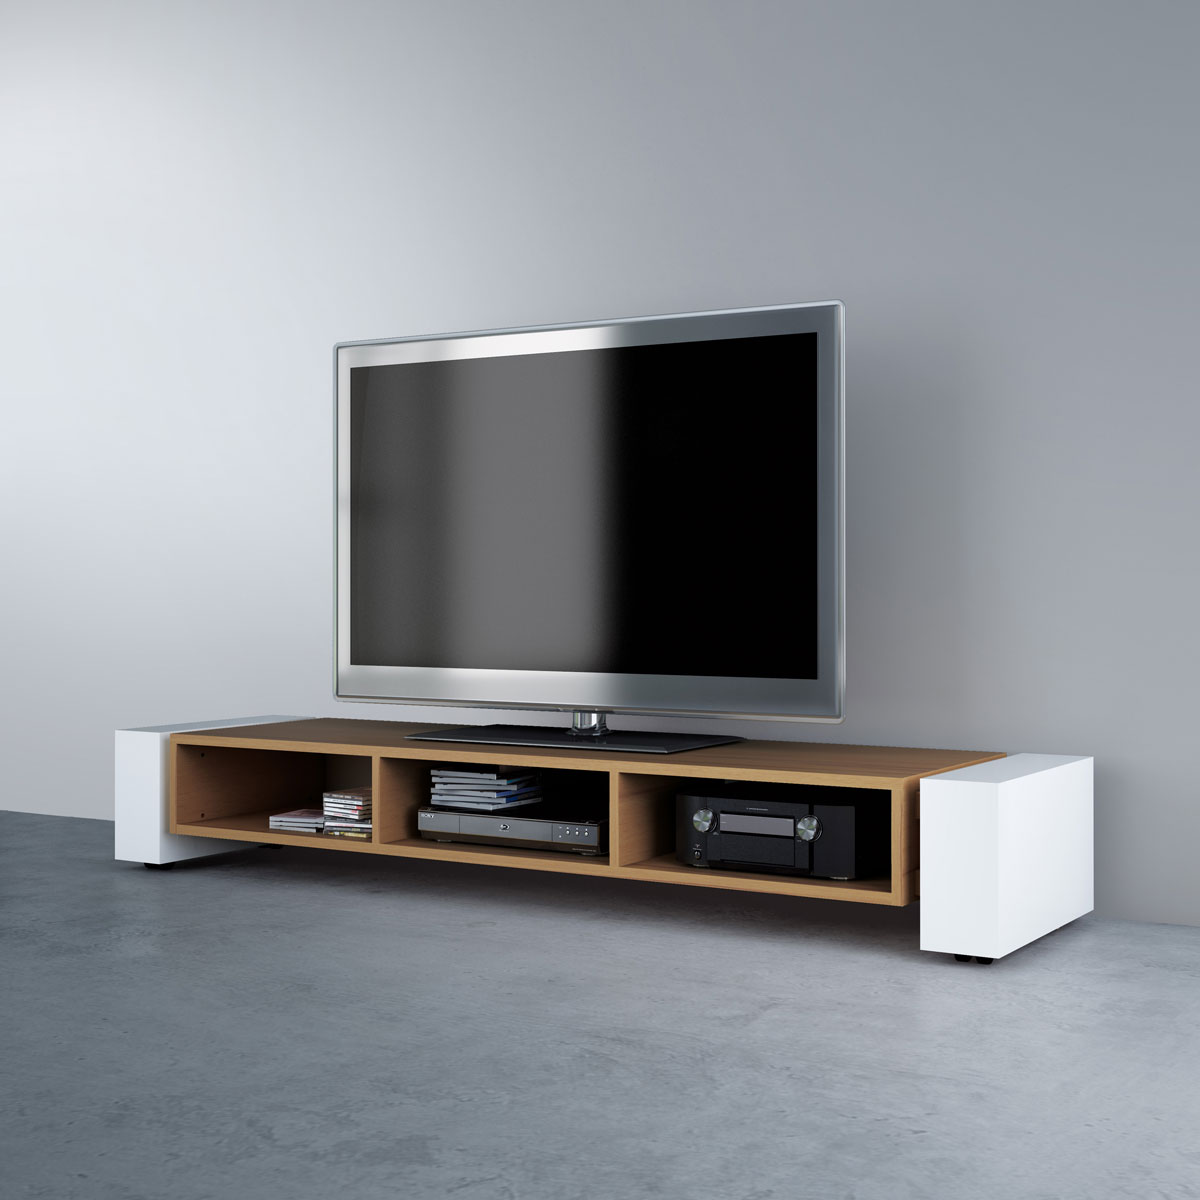 tv m bel mit halterung archive tv m bel und hifi m bel guide. Black Bedroom Furniture Sets. Home Design Ideas